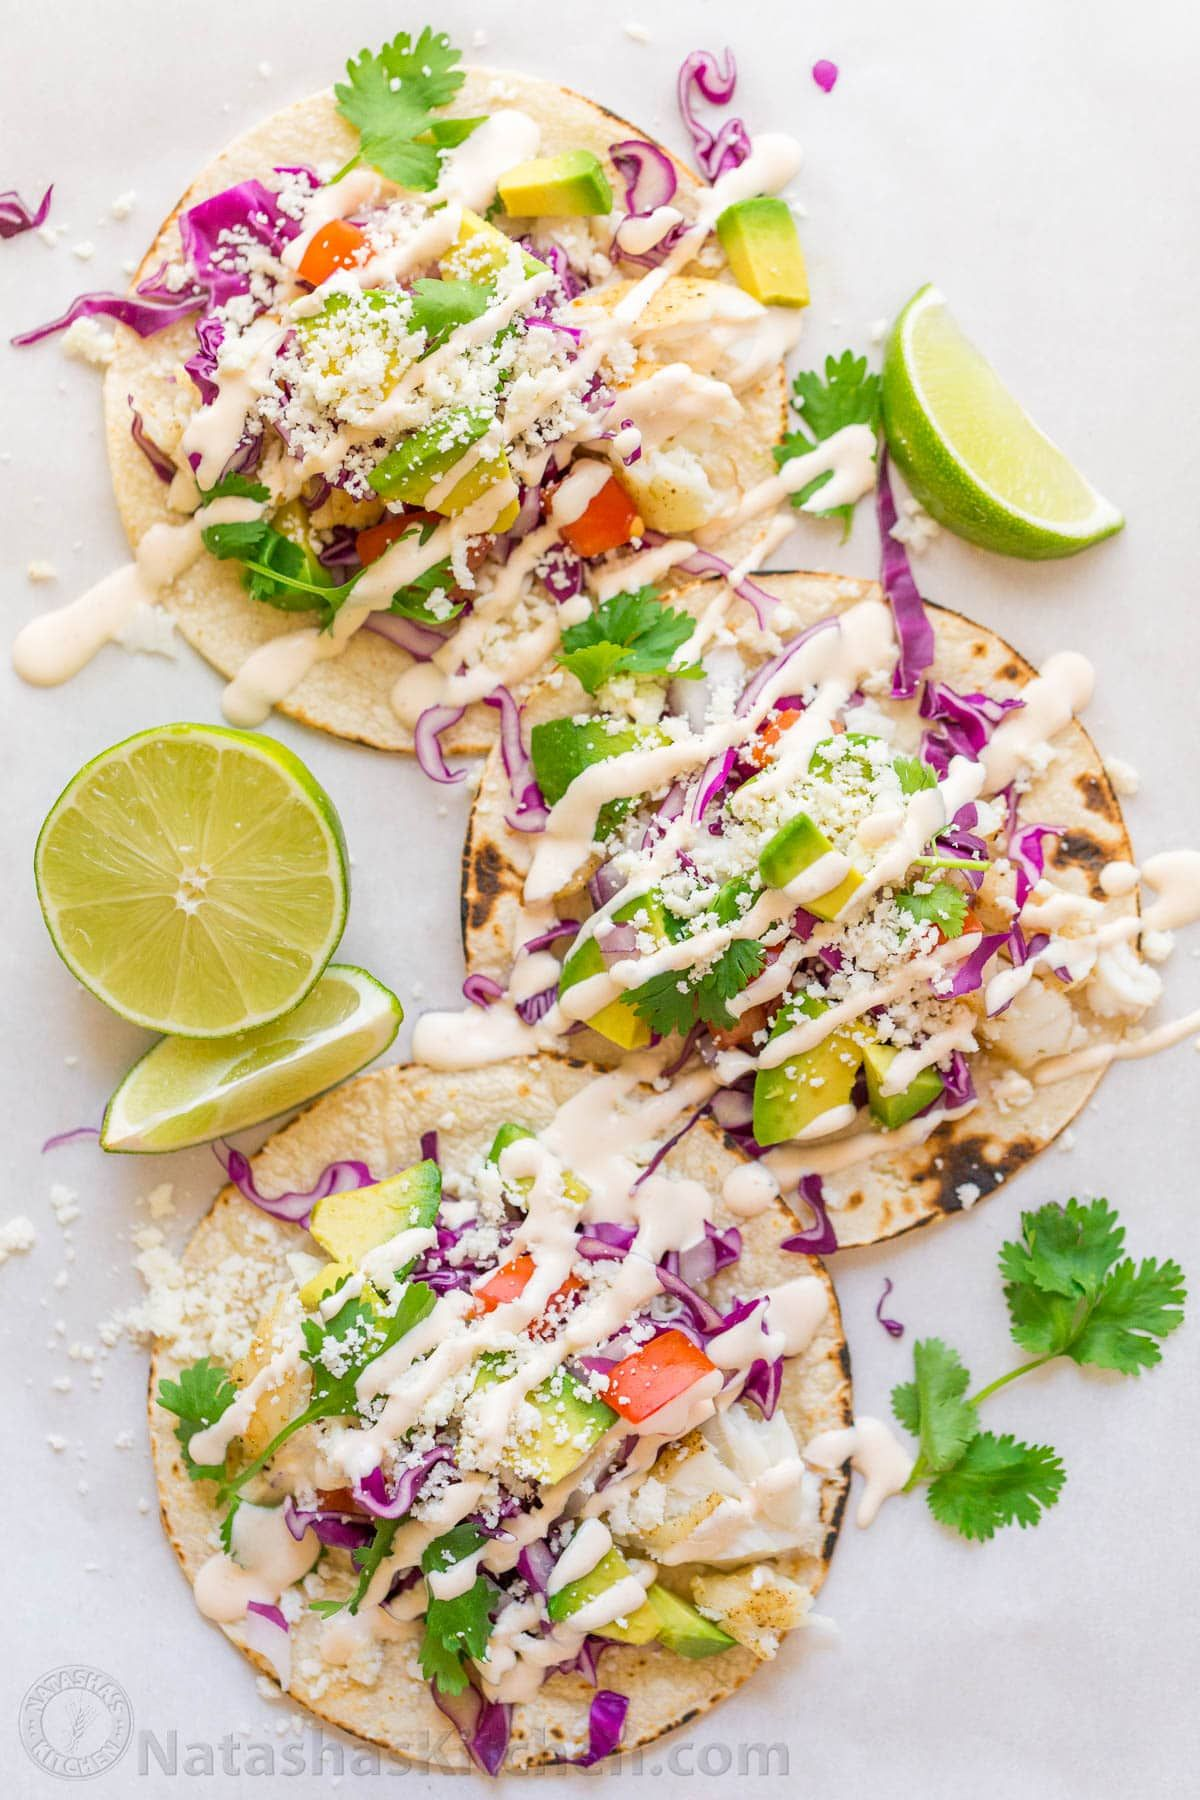 Fish Tacos Recipe with Best Fish Taco Sauce! - NatashasKitchen.com